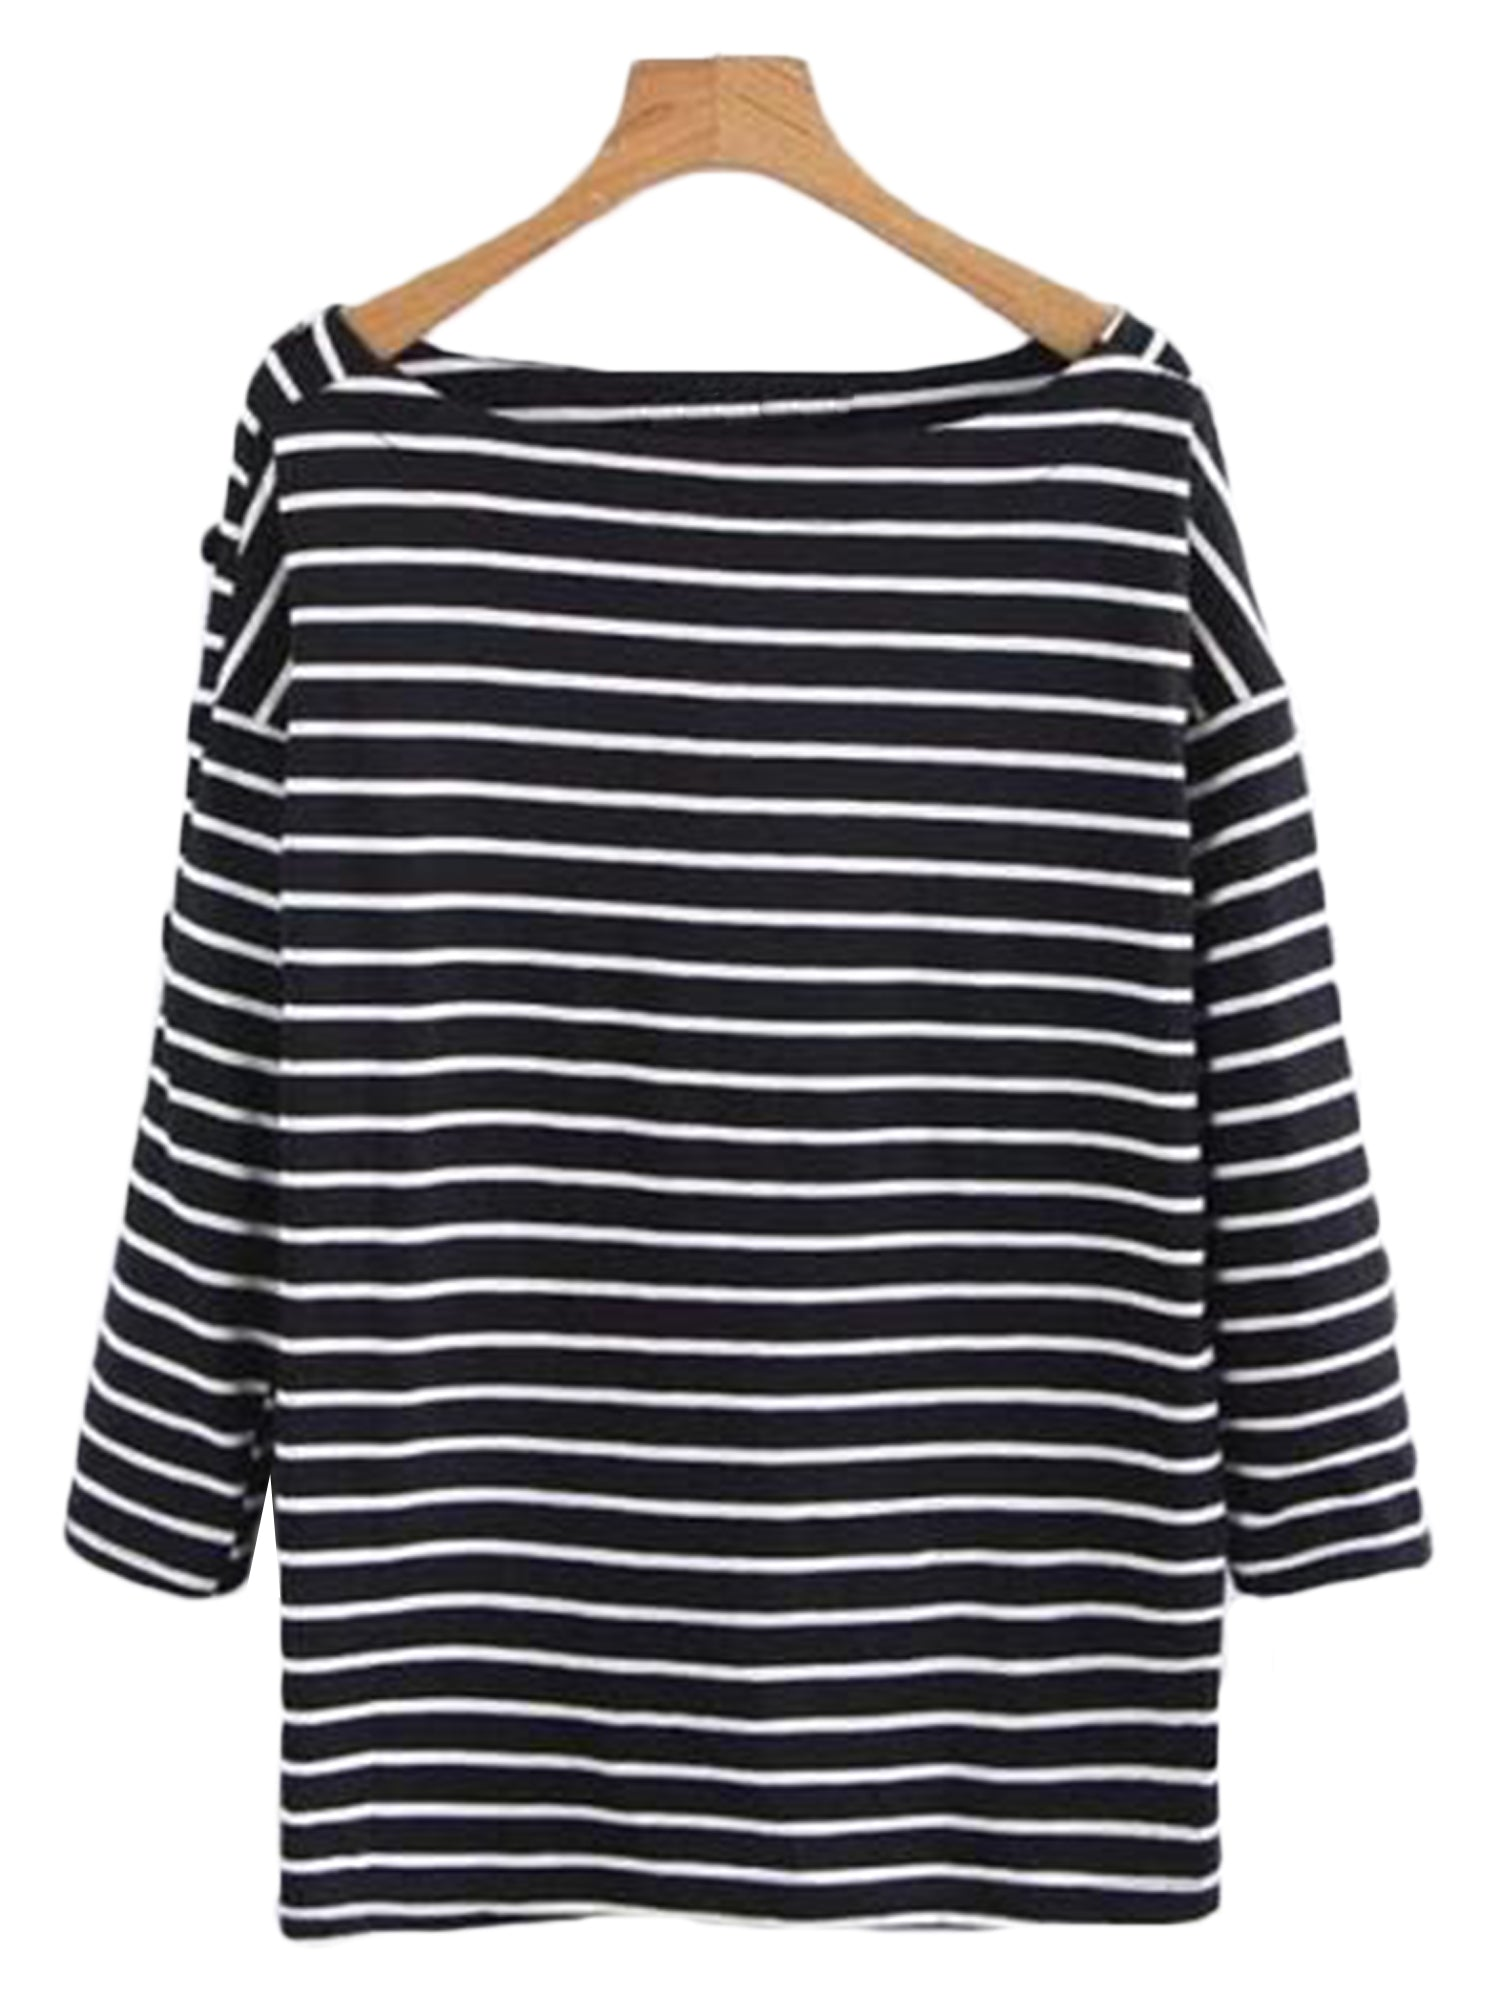 ( Back-ordered ) 'Megali' Boat-neck Striped Top (3 Colors)